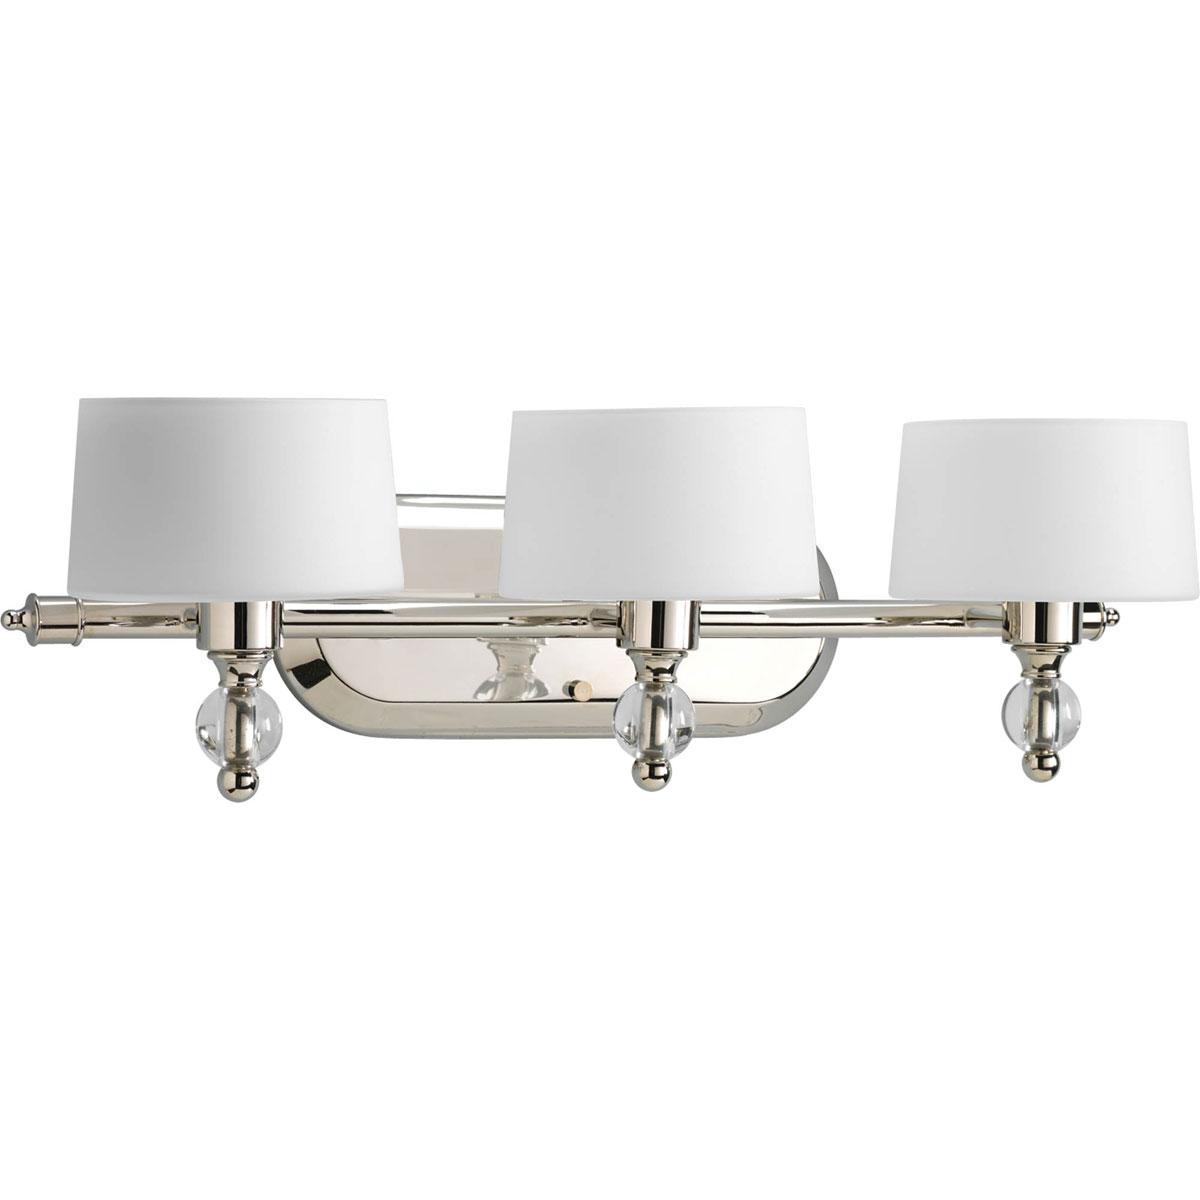 Progress Lighting P2927 104WB Fortune 3 Light Bath & Vanity Fixture wit